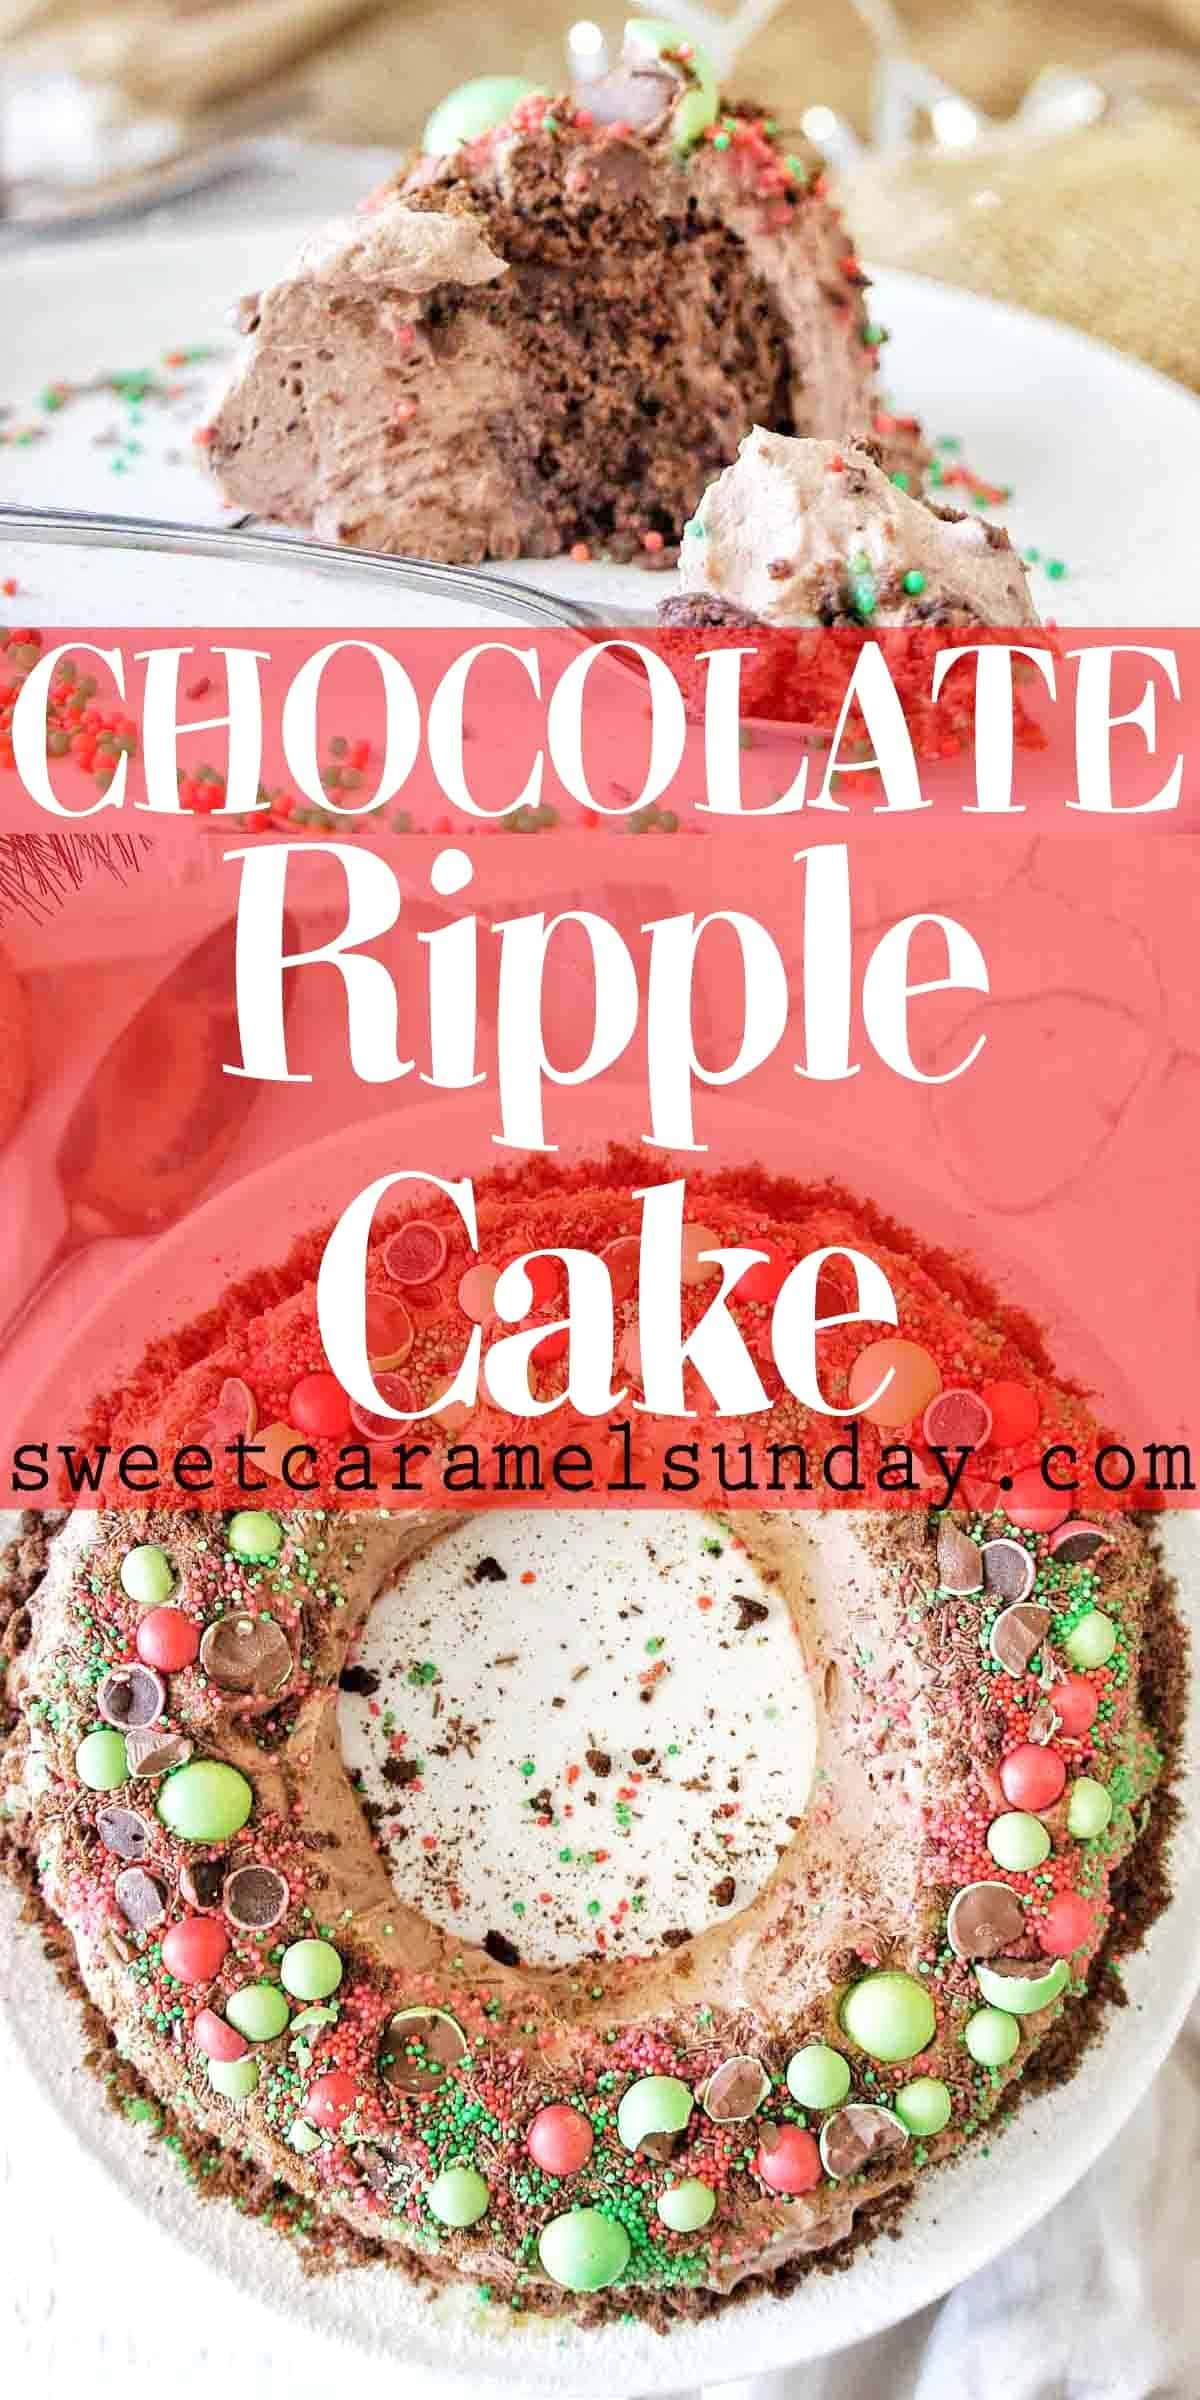 Chocolate Ripple Cake with text overlay